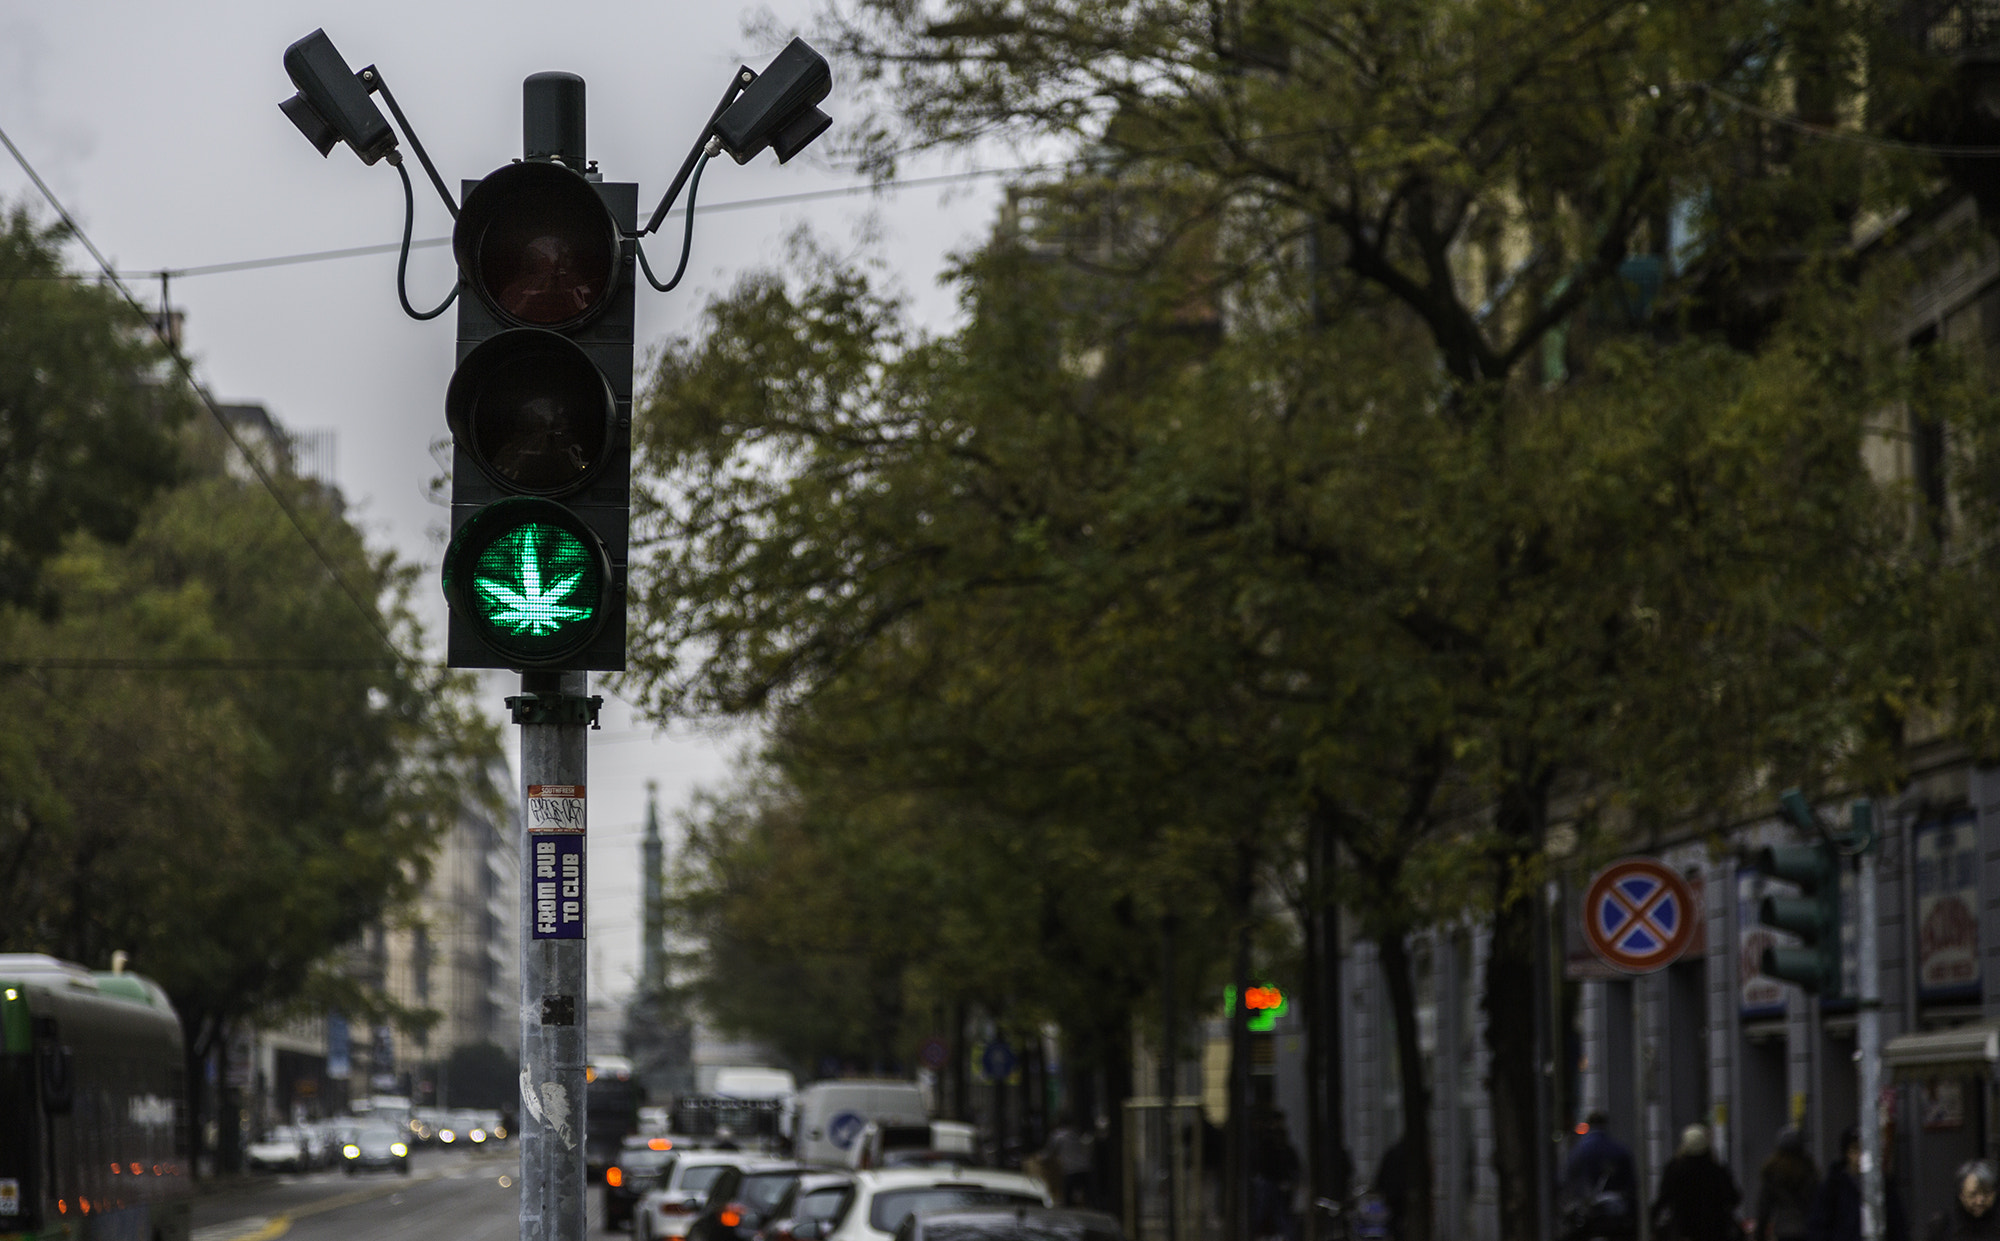 Weed leaf traffic signal green light